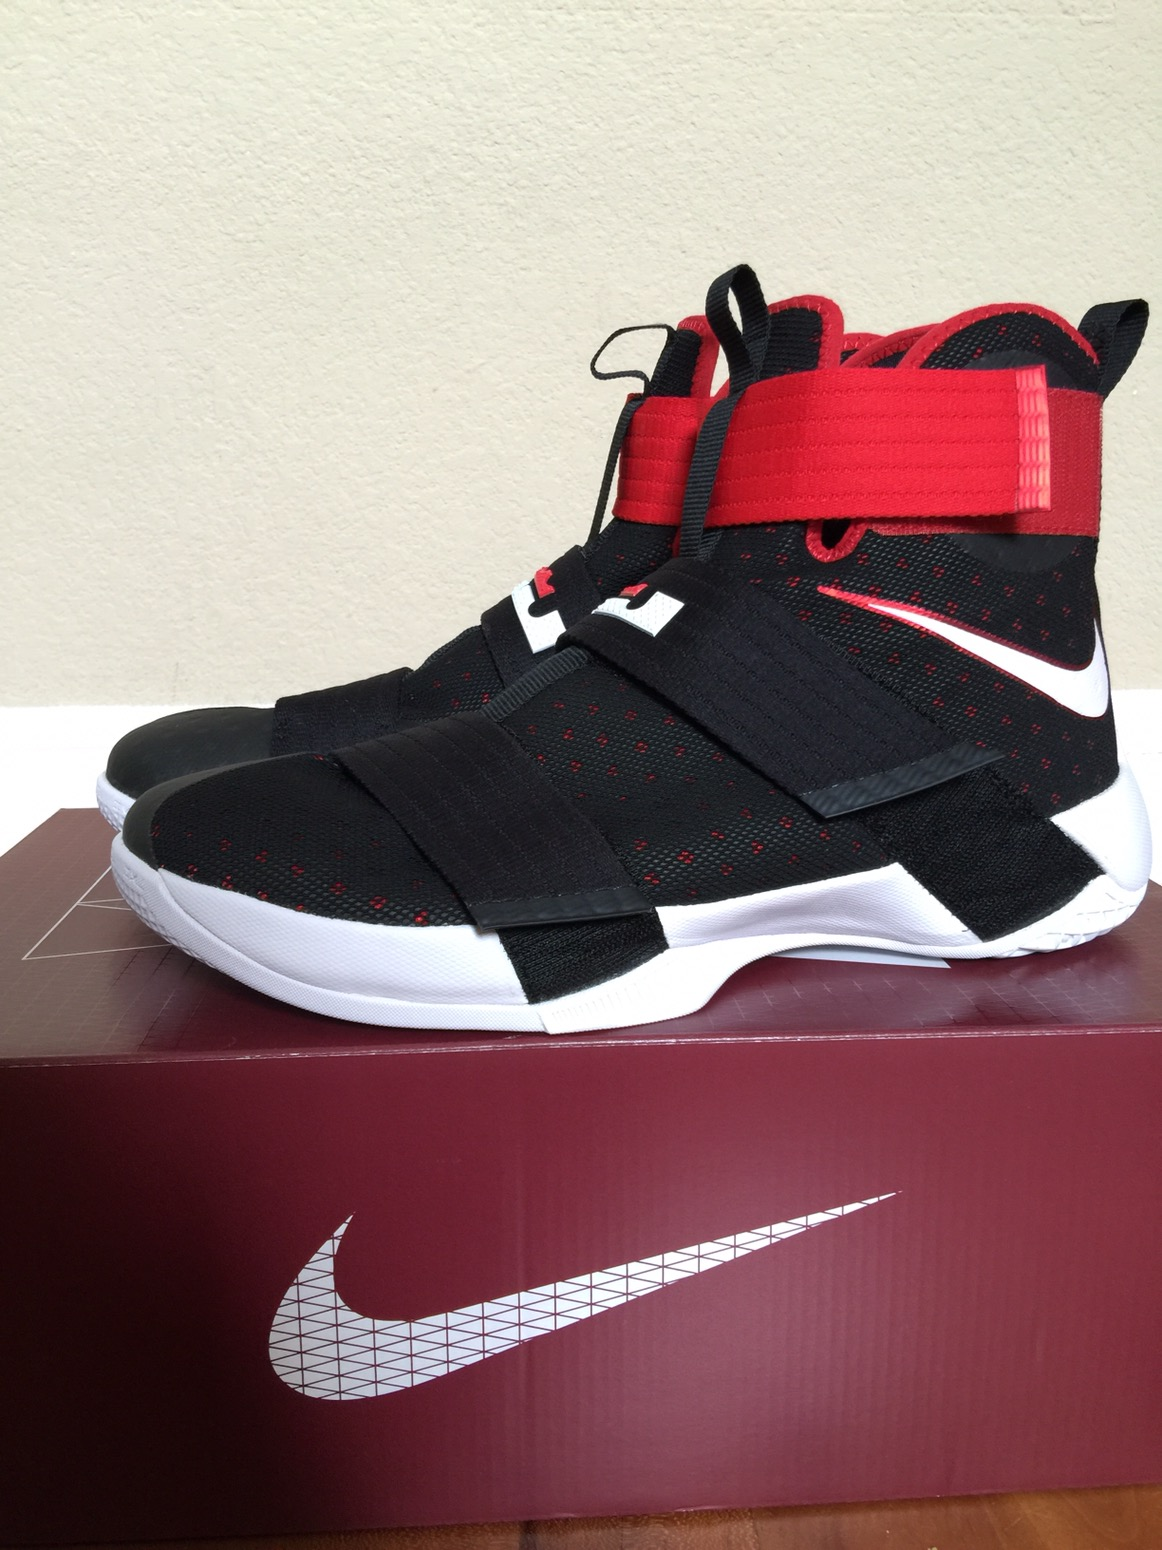 fd2e2c342ec5d Nike Lebron Soldier X 10 Performance Review